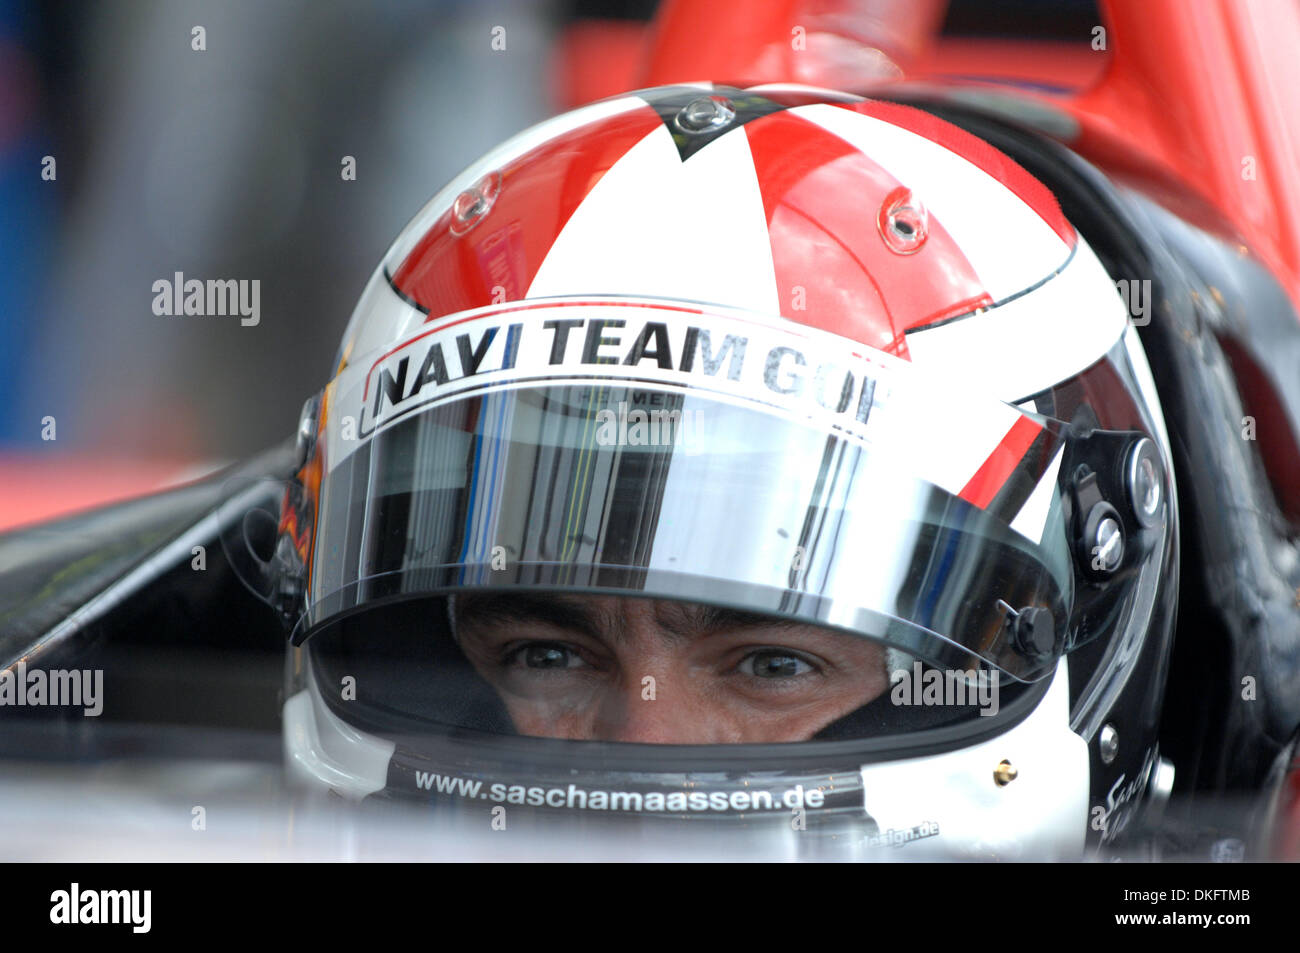 June 9, 2009 - Le Mans, France - Team Goh Porsche driver SASCHA MAASSEN, of Germany, waits during free practice, Wednesday, June 10, 2009, in Le Mans, France. (Credit Image: © Rainier Ehrhardt/ZUMAPRESS.com) - Stock Image